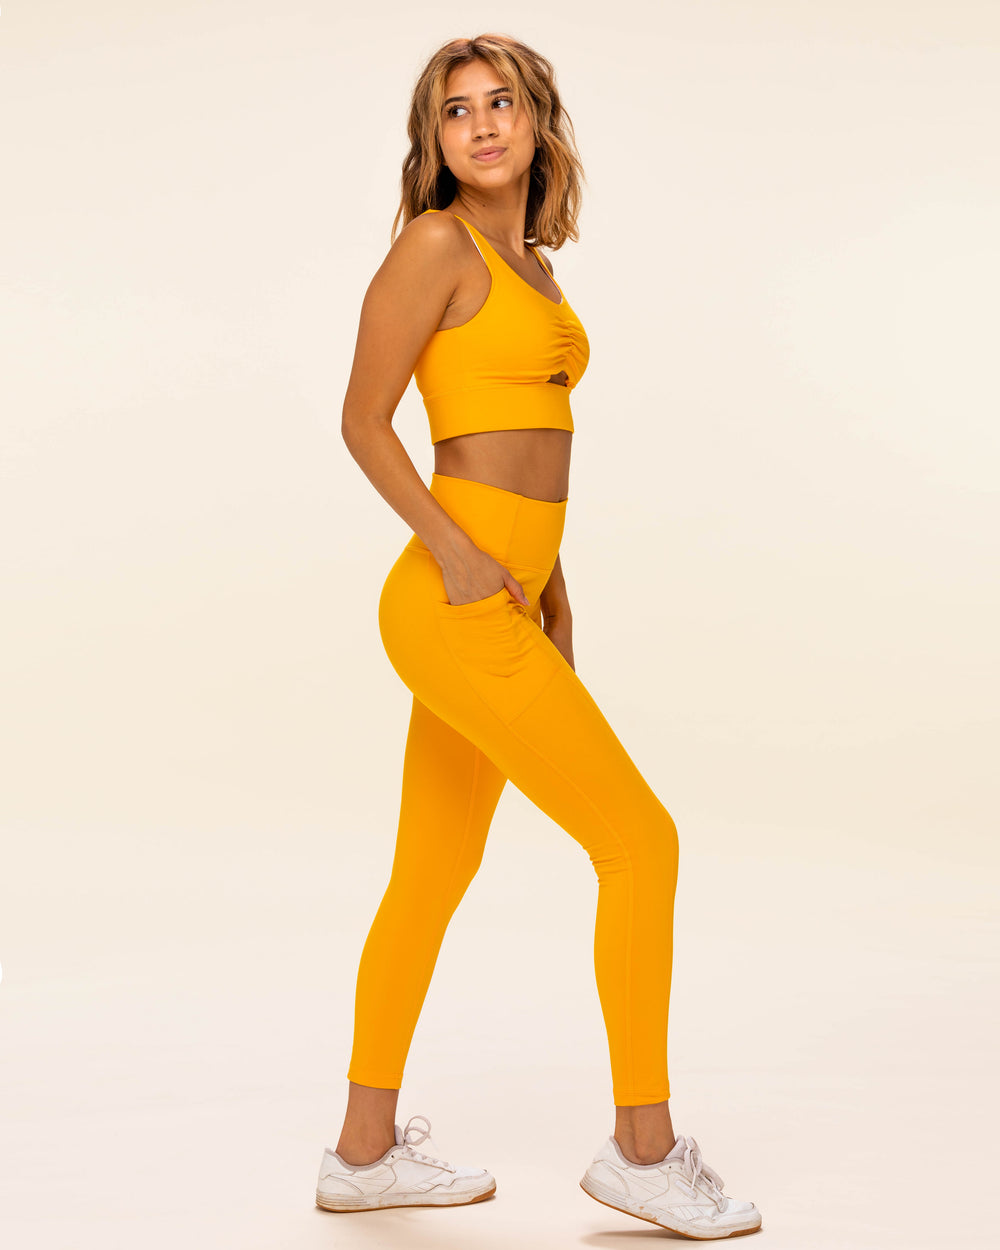 Ruched Sports Bra - Saffron